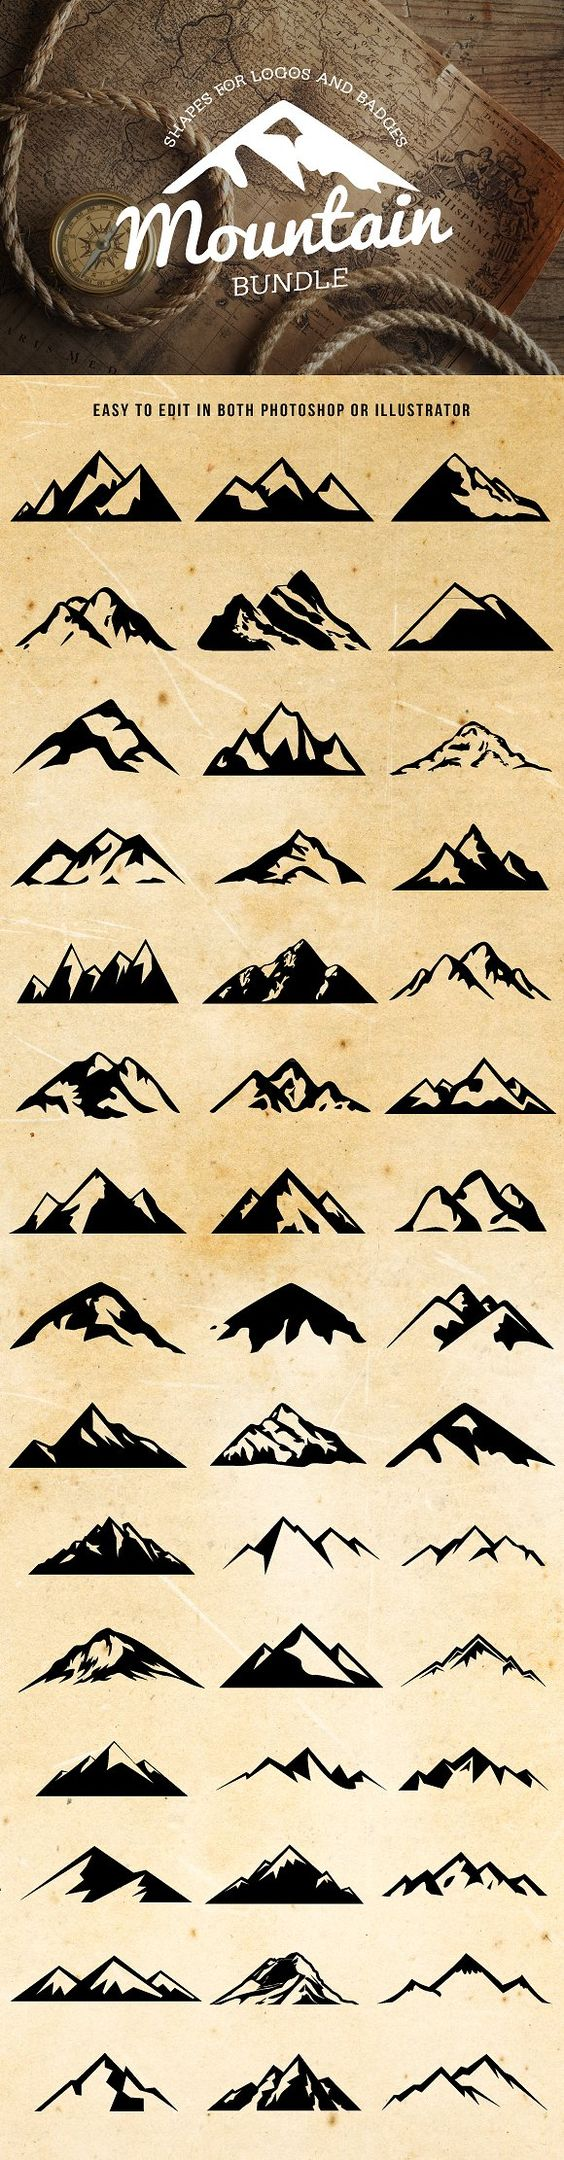 Mountain Shapes For Logos Bundle